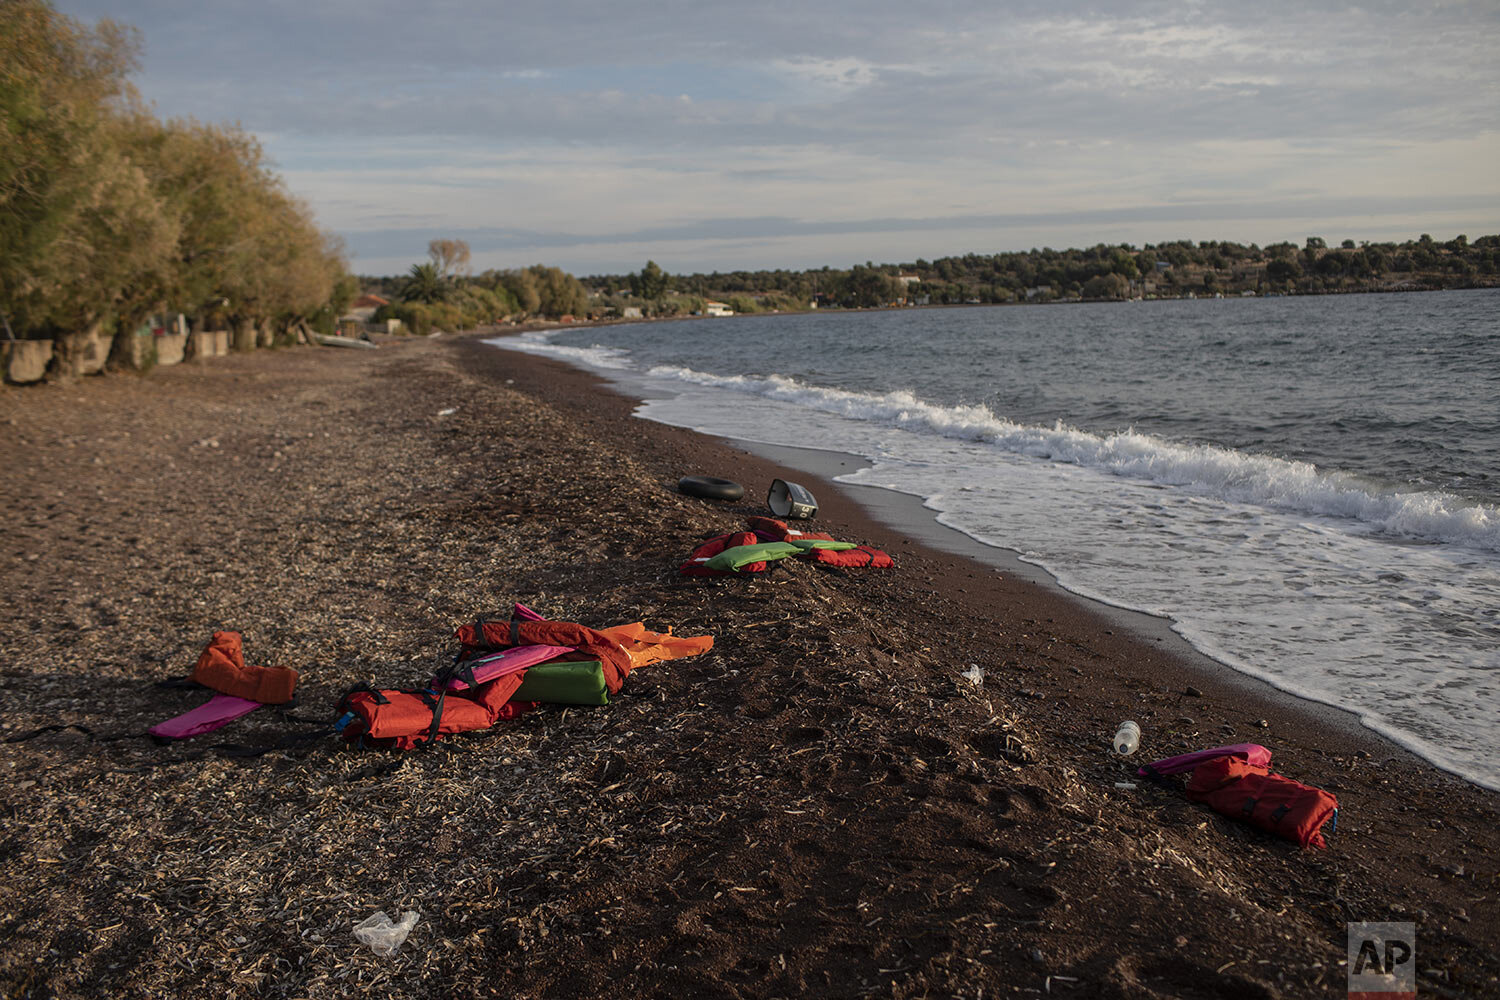 Life vests lay on a beach at the seaside village of Tsonia, Lesbos island, Greece after the arrival of refugees and migrants on a rubber boat from Turkey, Monday, Oct. 7, 2019. (AP Photo/Petros Giannakouris)